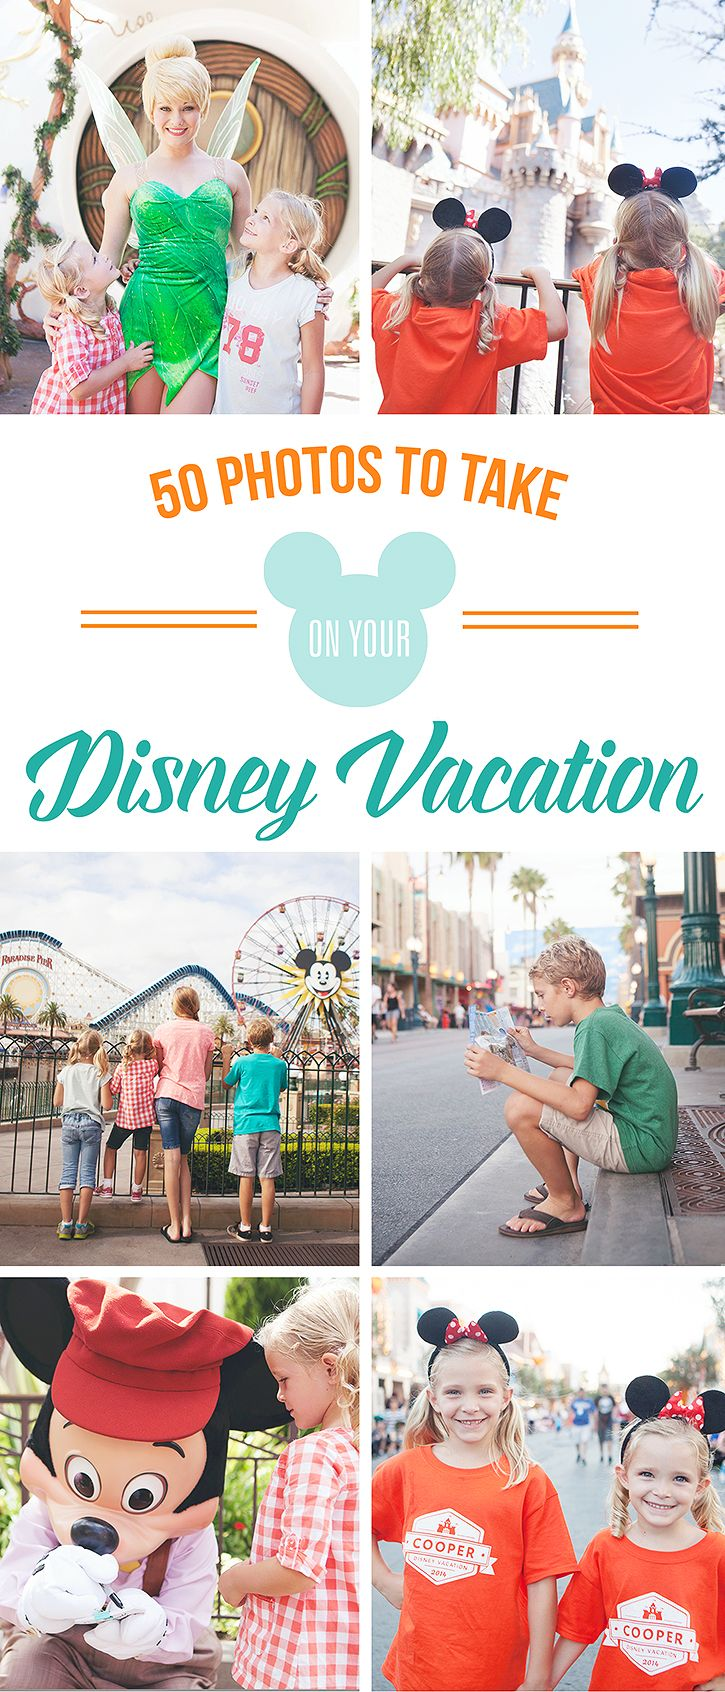 Allow me to be your personal authorized Disney vacation planner at no additional cost to you. Contact me on Facebook at Tammy's Disney vacation page or roopurple105@aol.com or http://www.disneywebcontent.com/dcc/26073/. Together we can make each day of your Disney vacation a Magical Day.